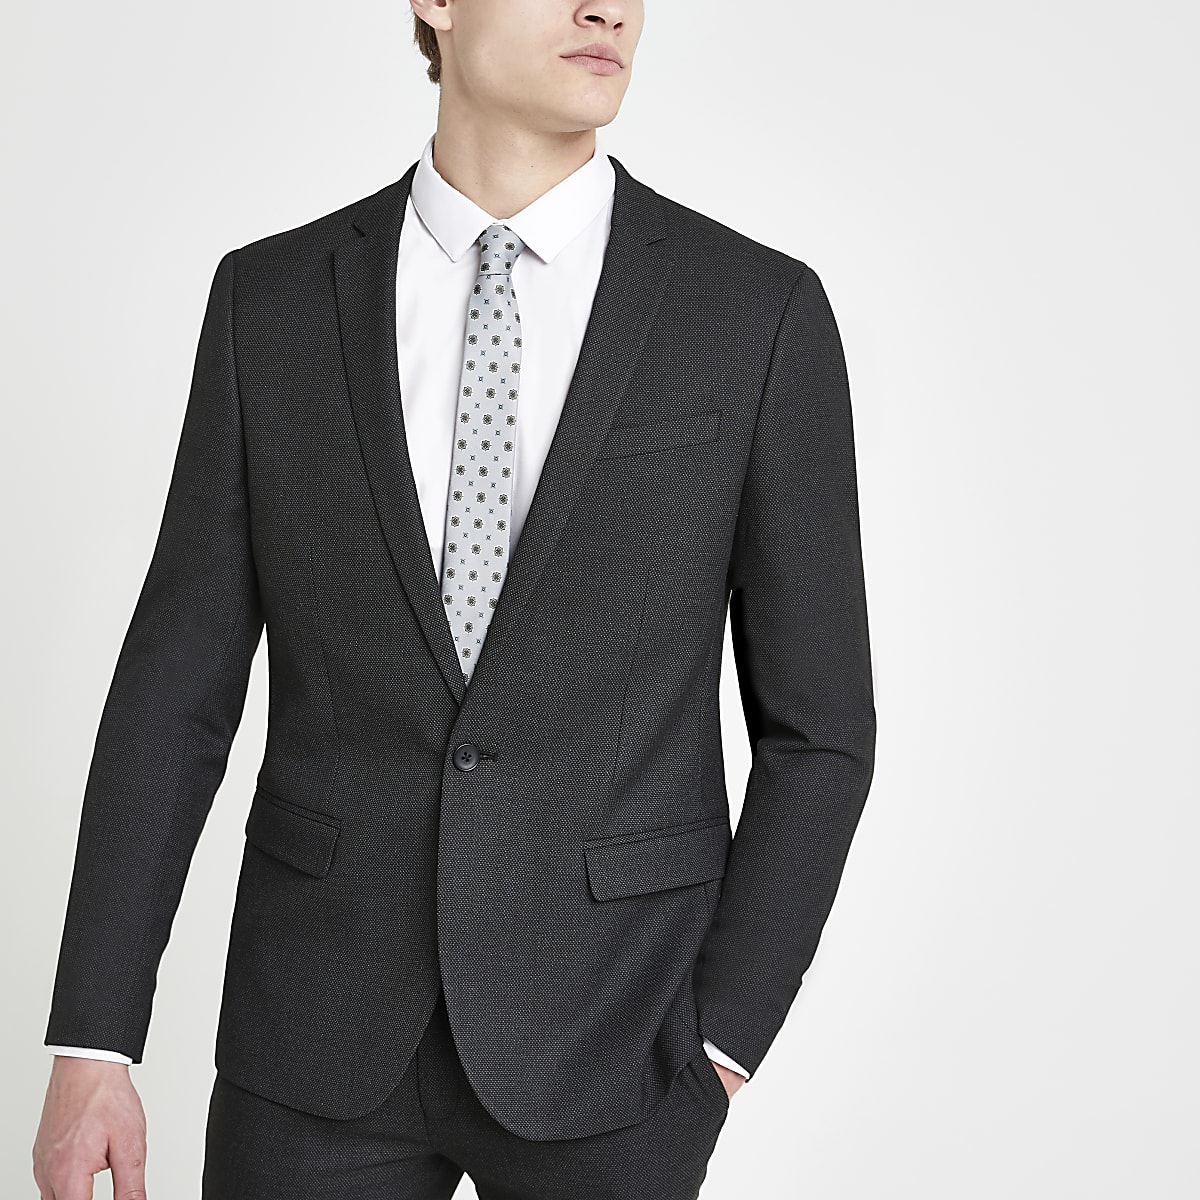 01567330 Dark grey textured stretch skinny suit jacket - Suit Jackets - Suits - men